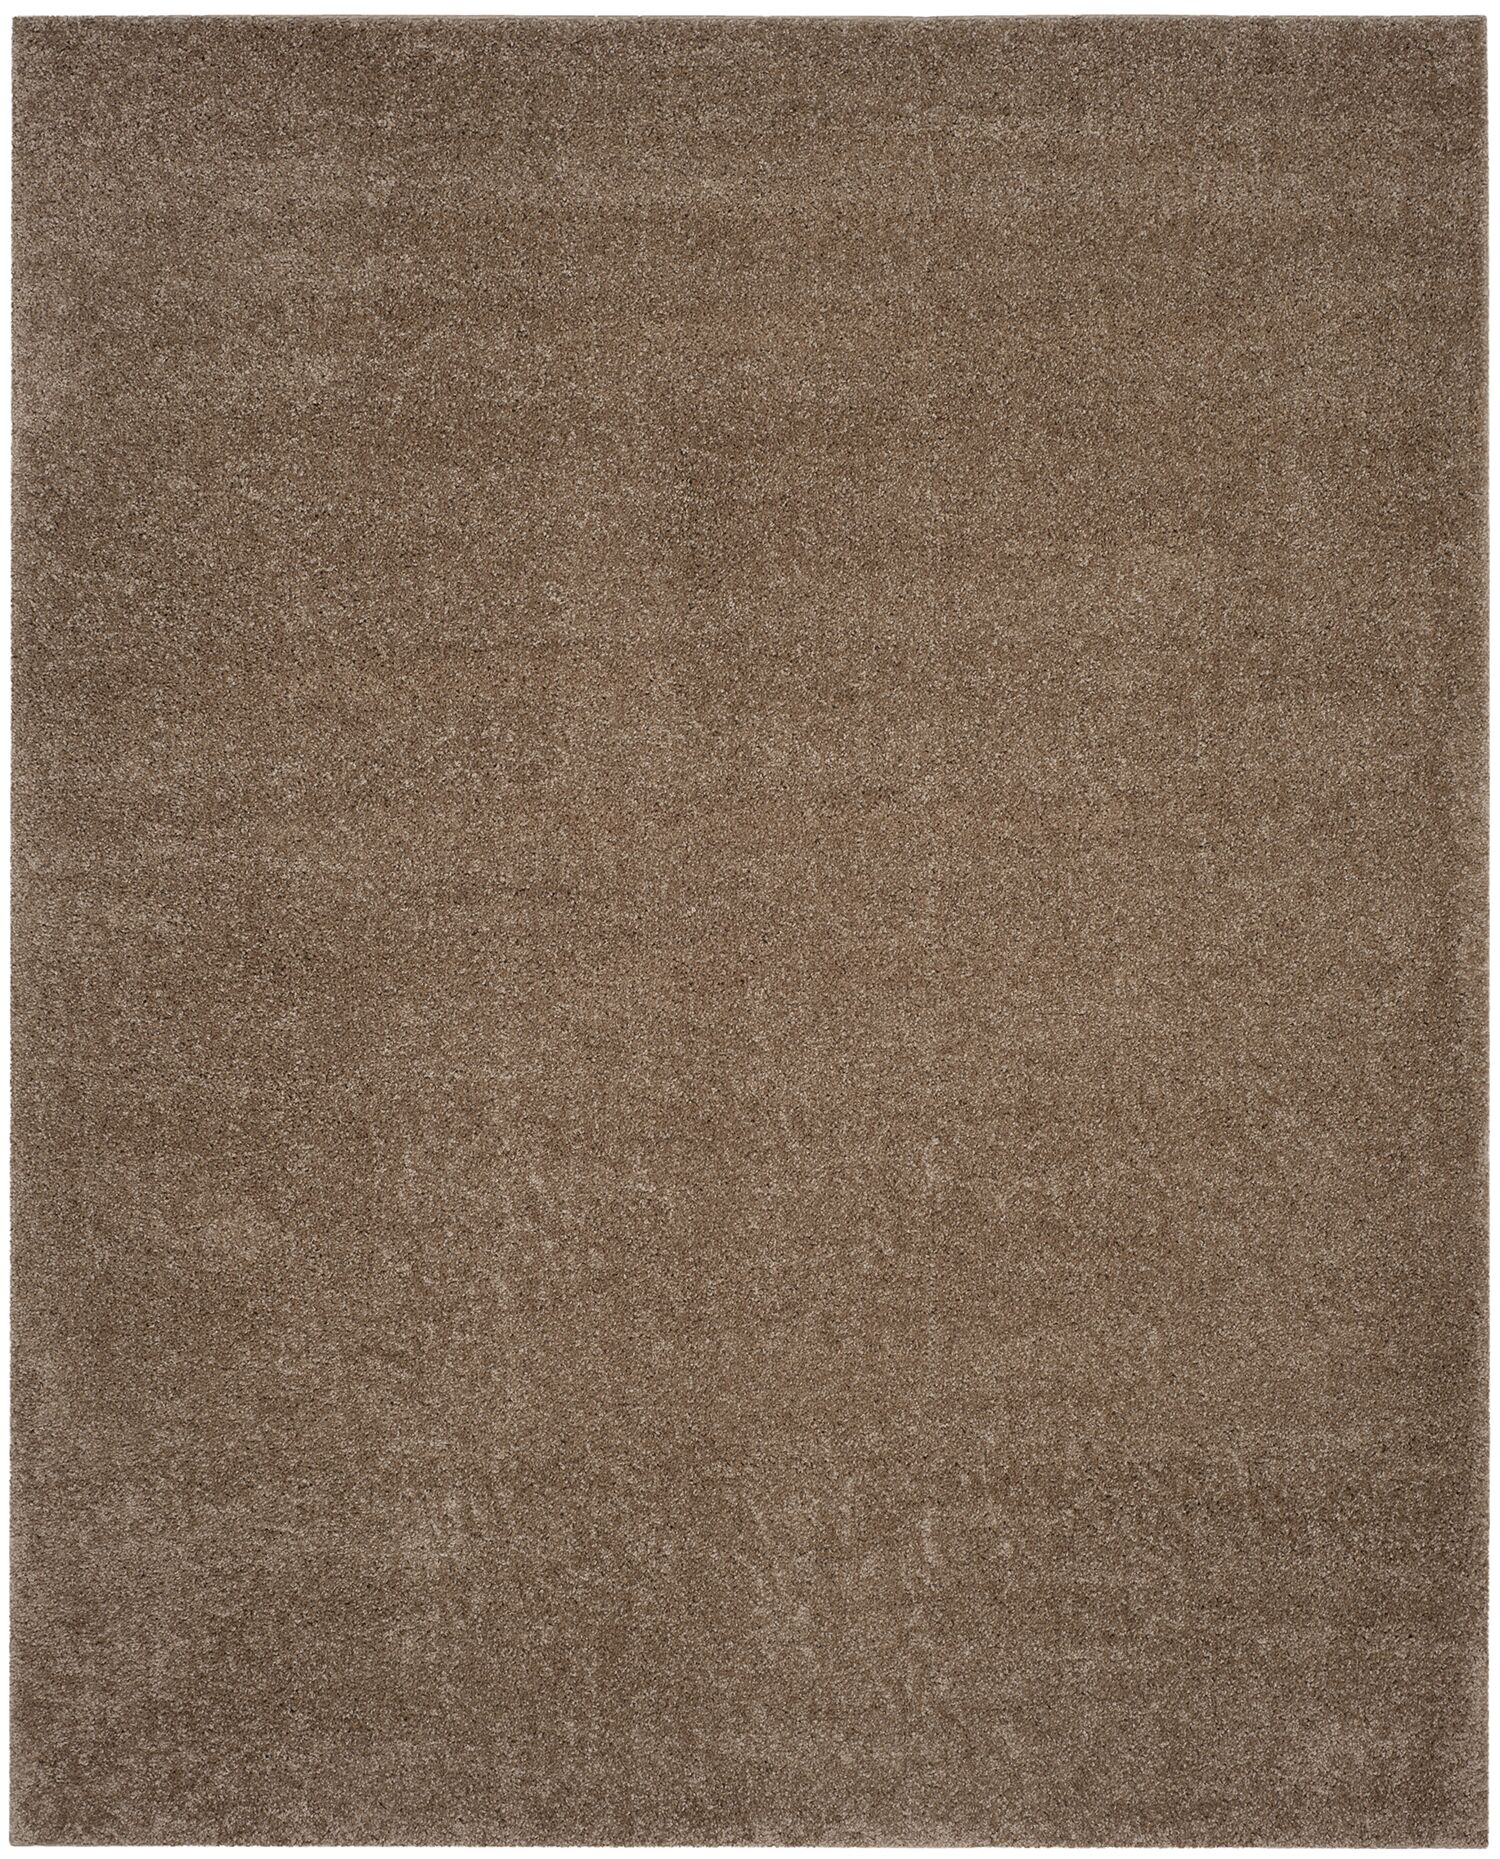 Curran Taupe Area Rug Rug Size: Rectangle 8' x 10'